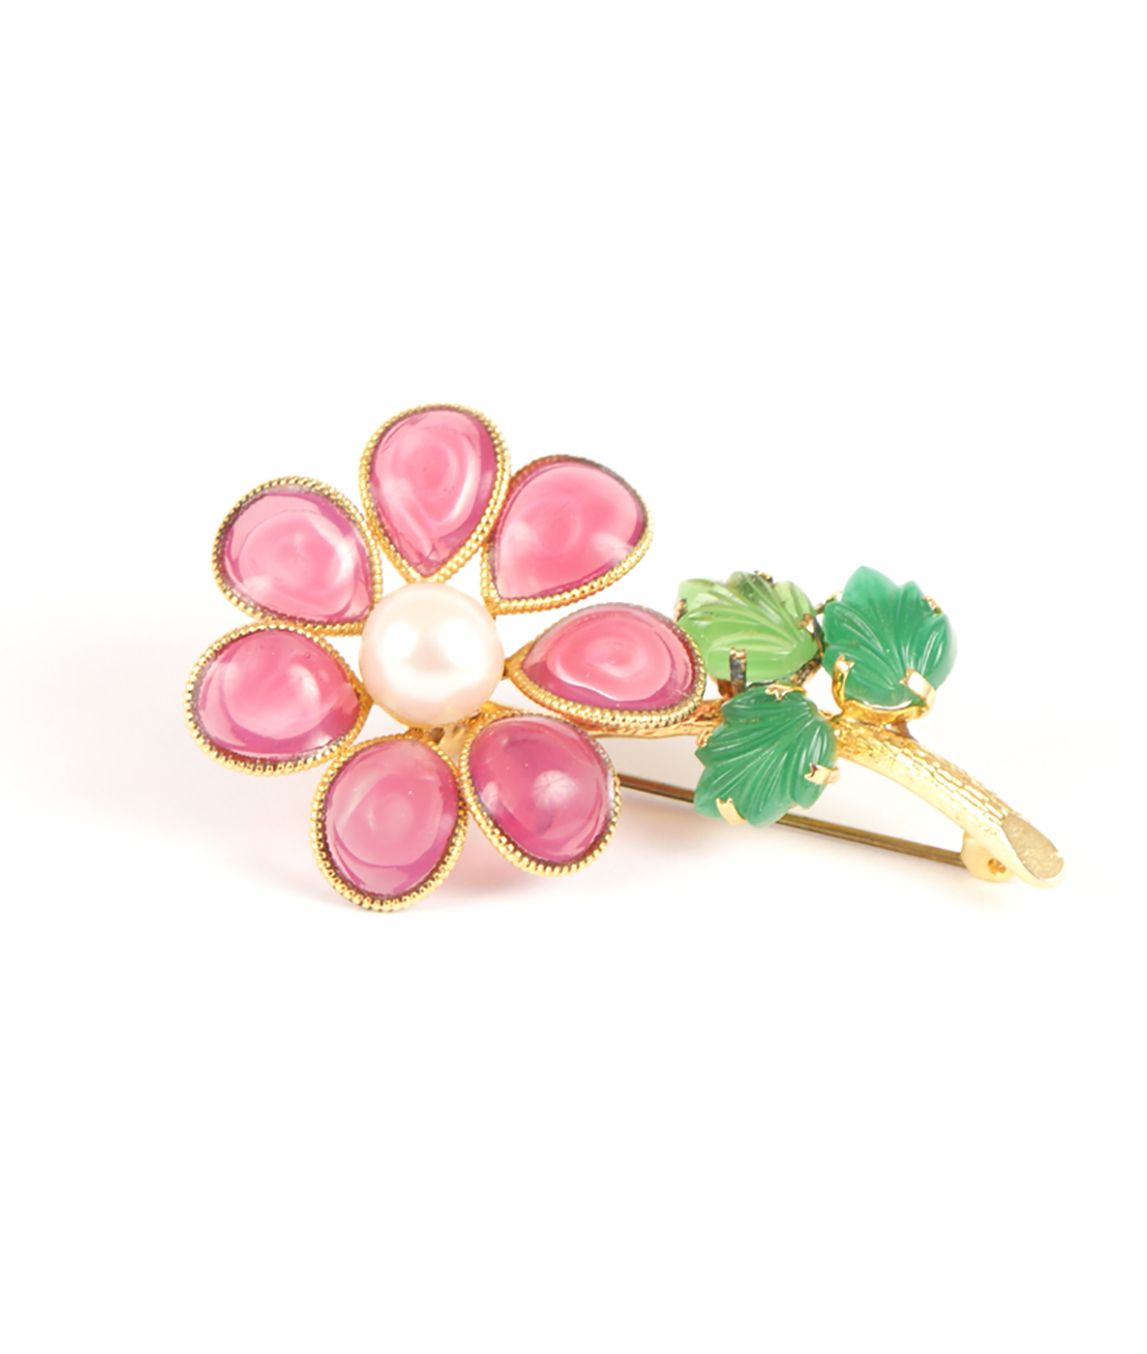 Pink glass flower brooch by Dior